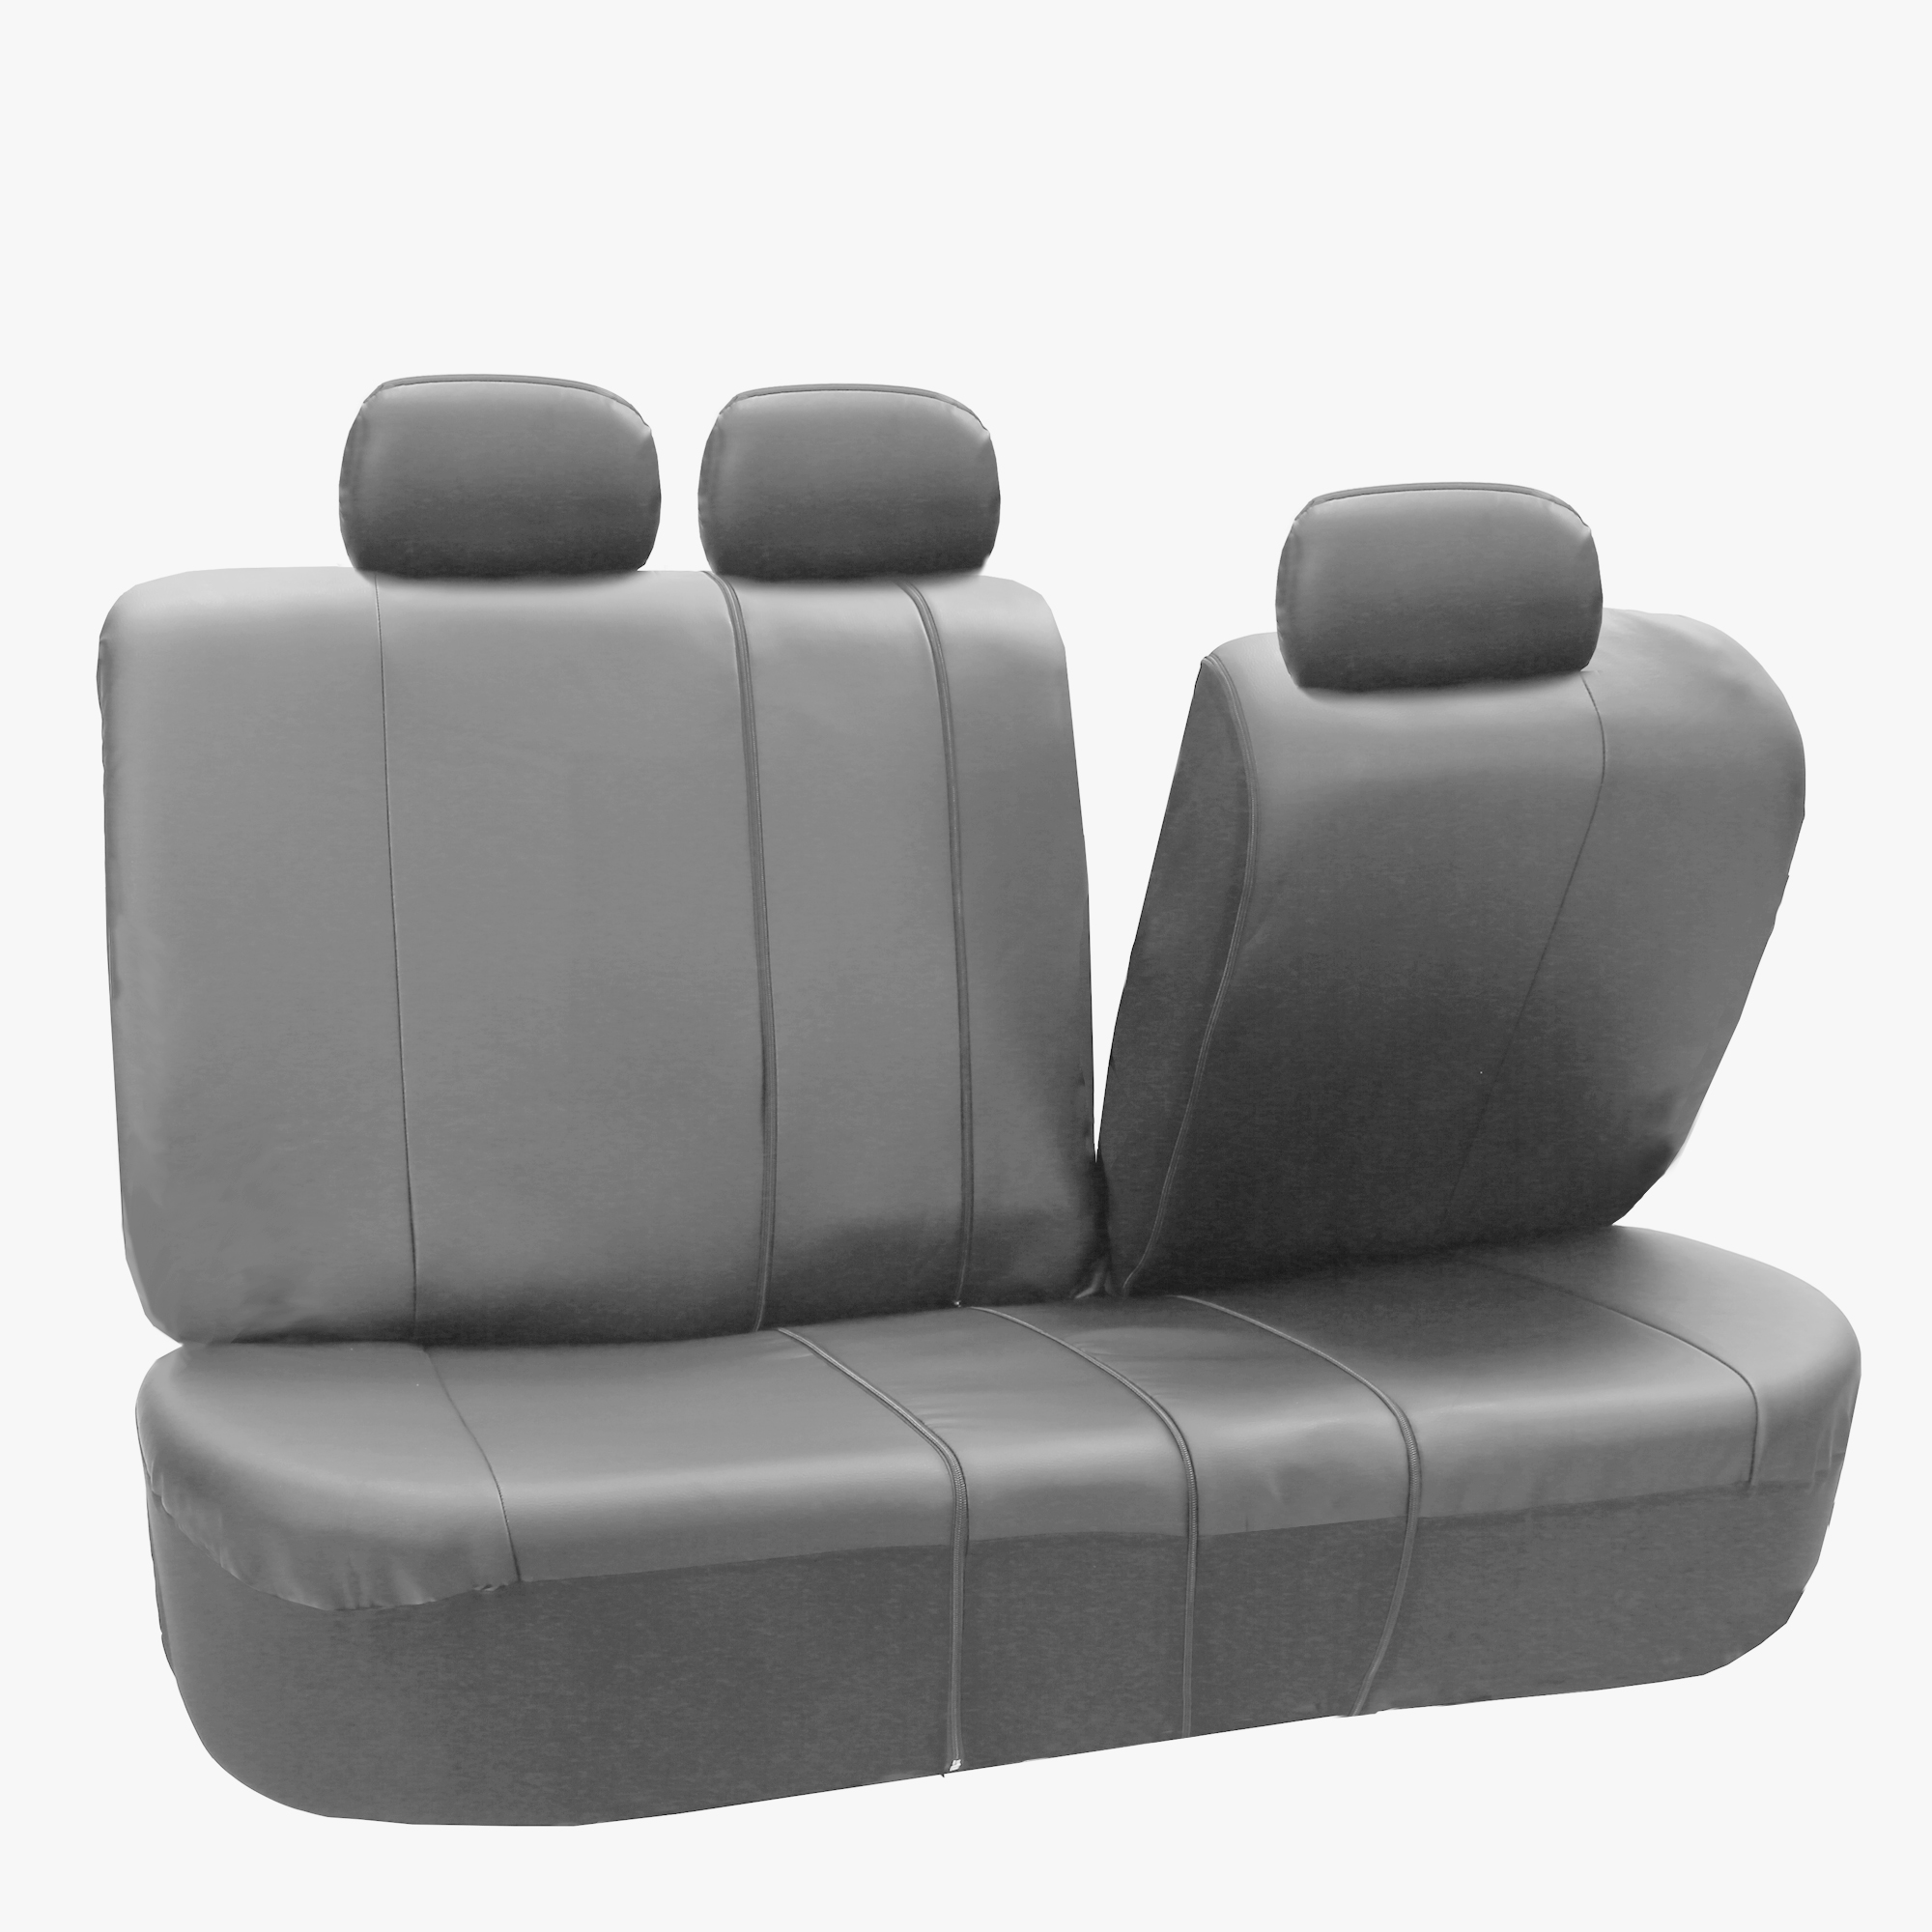 faux leather gray car seat cover set headrests floor mat set ebay. Black Bedroom Furniture Sets. Home Design Ideas